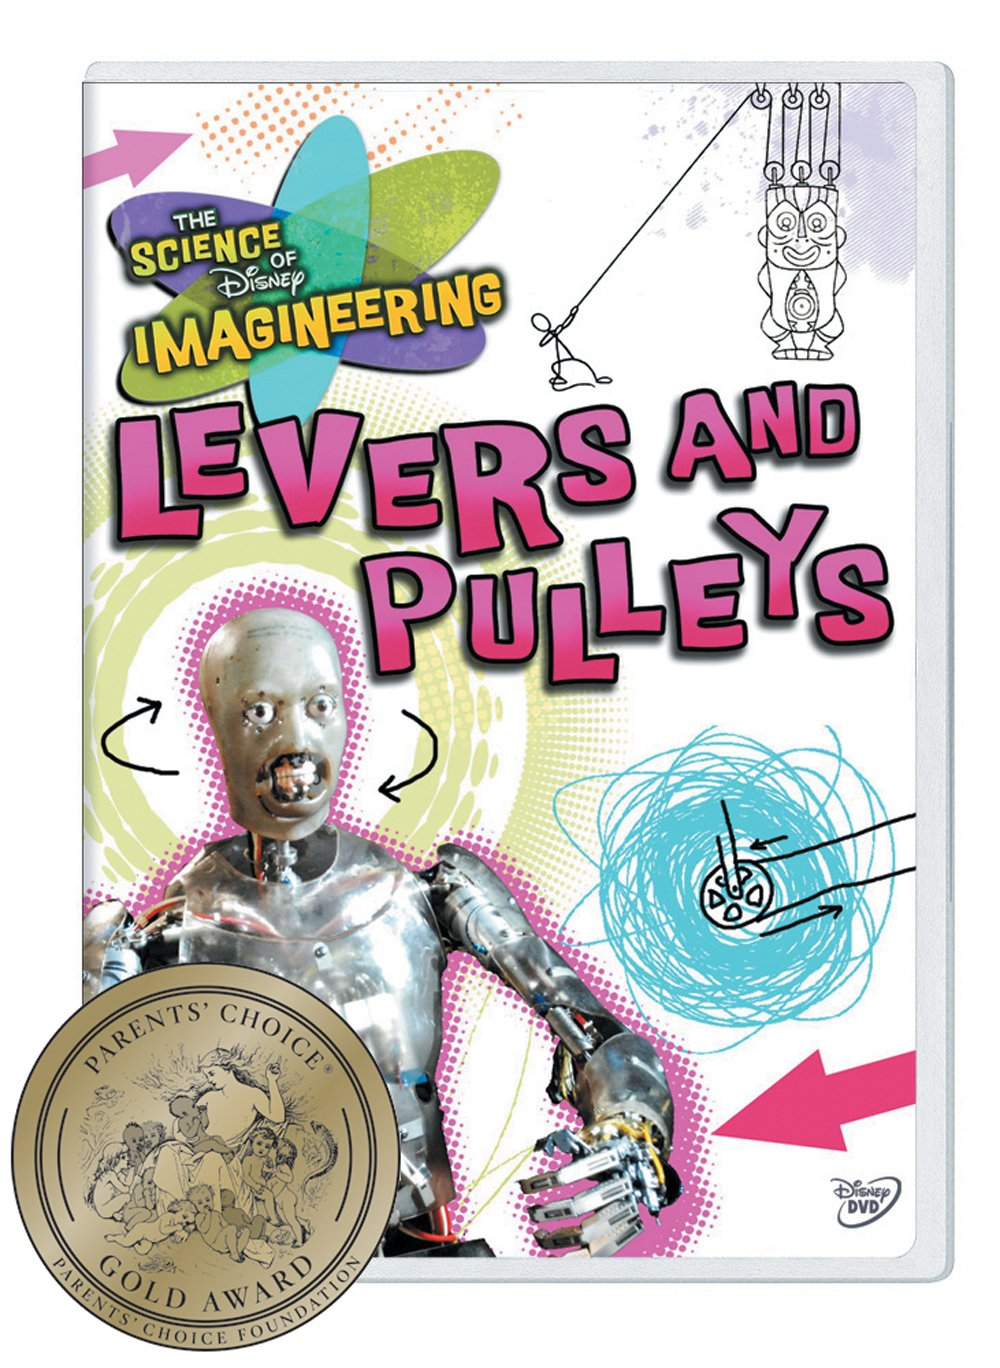 The Science of Disney Imagineering: Levers & Pulleys Classroom Edition [Interactive DVD] by Disney Educational Productions